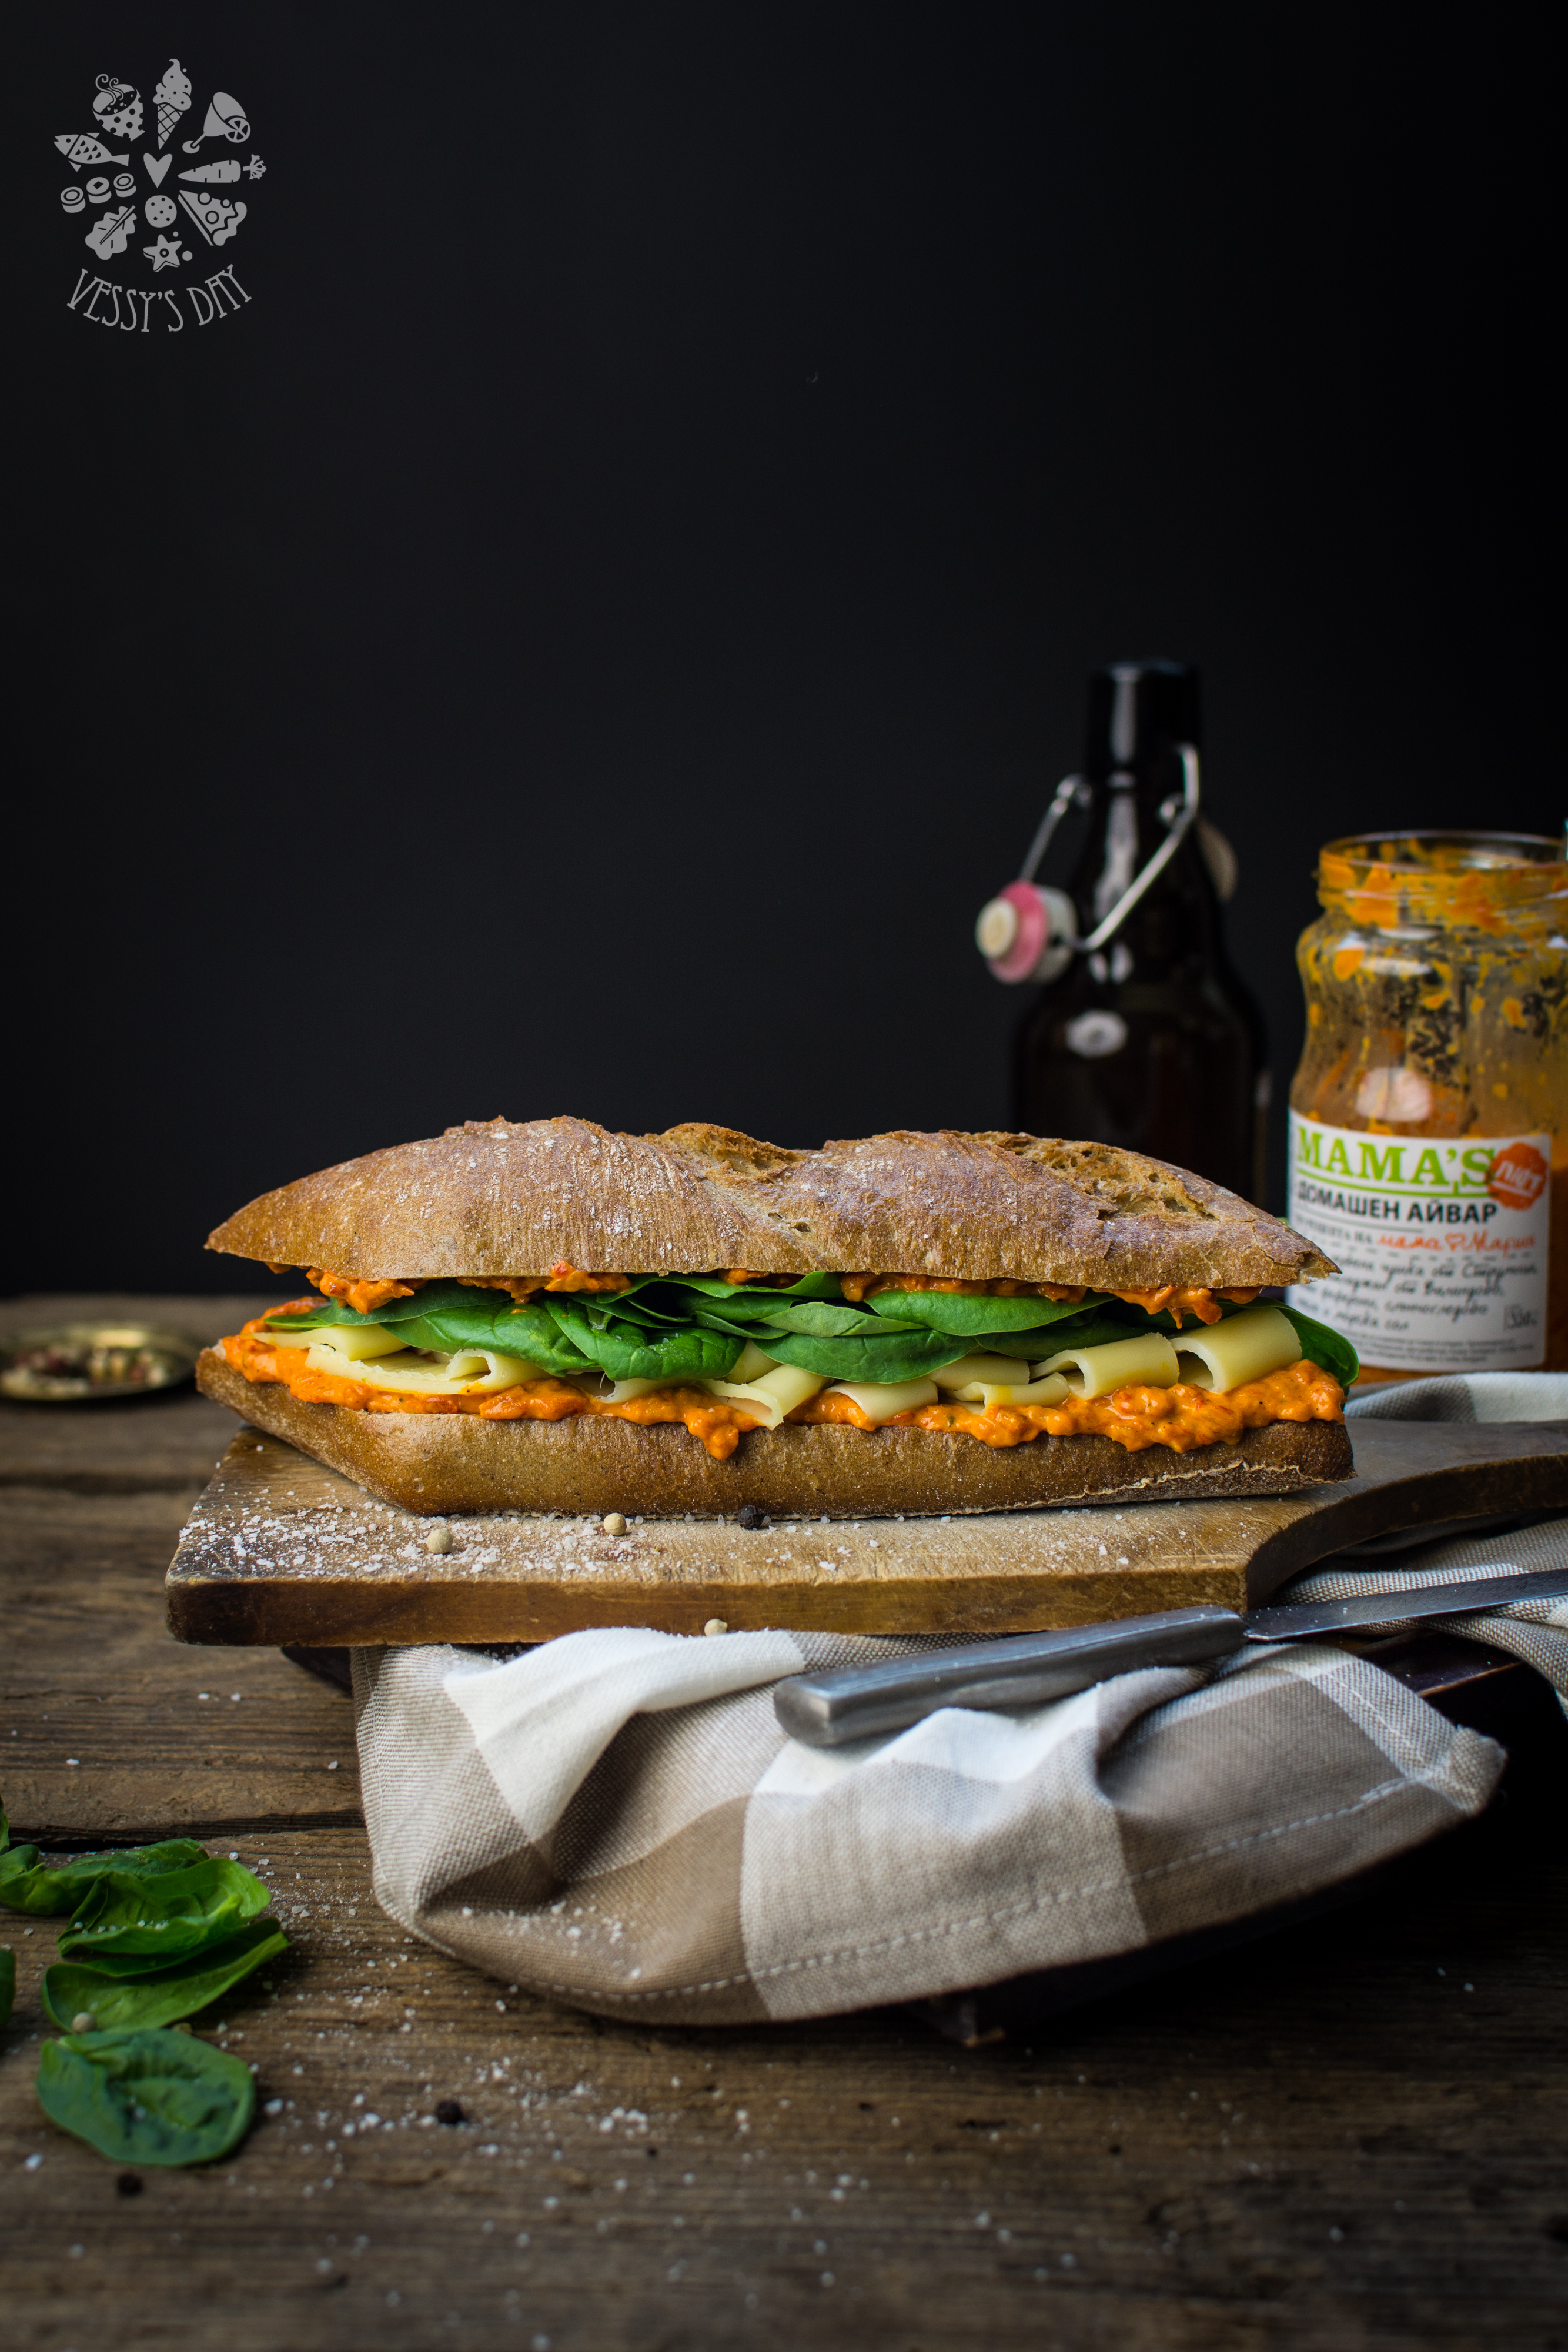 Ciabatta with spinach and gauda-1